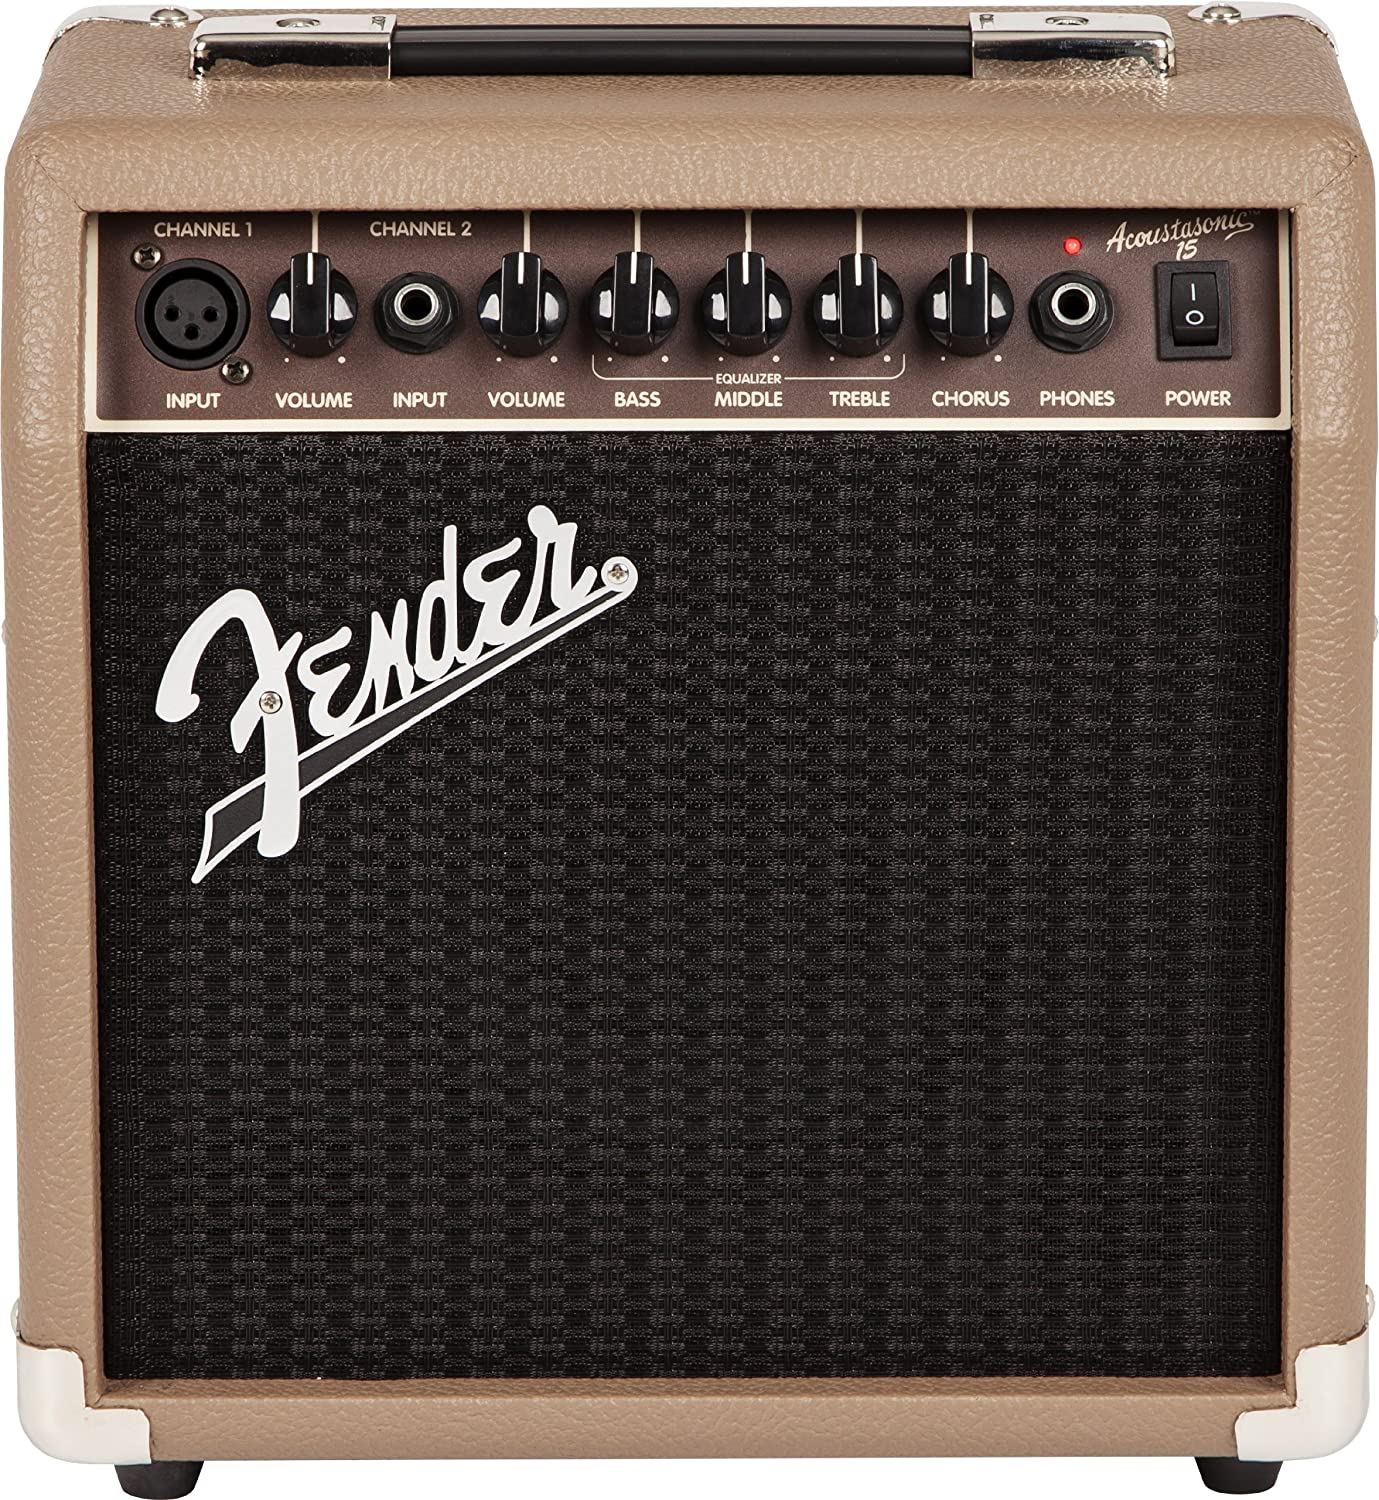 3. Fender Acoustasonic 40 Acoustic Guitar Amplifier